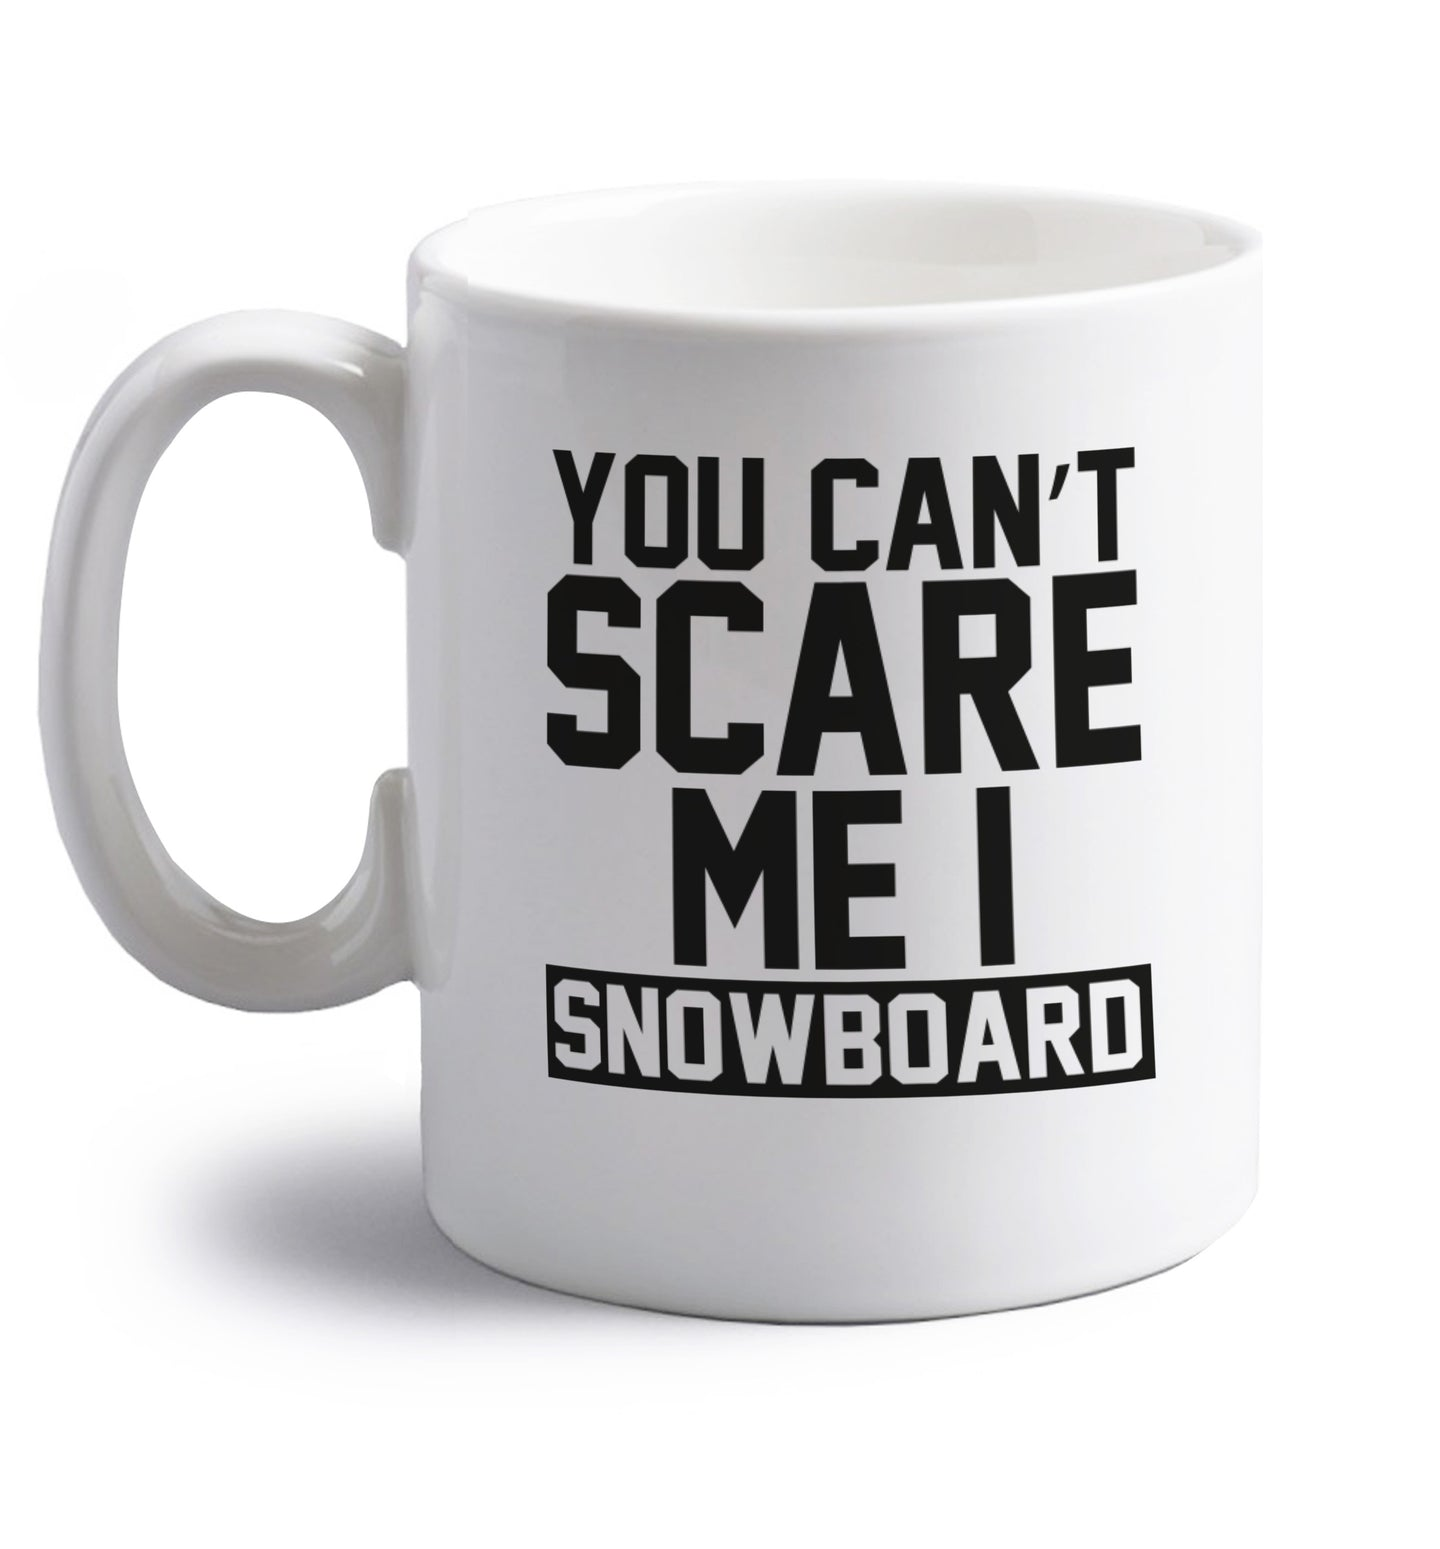 You can't scare me I snowboard right handed white ceramic mug